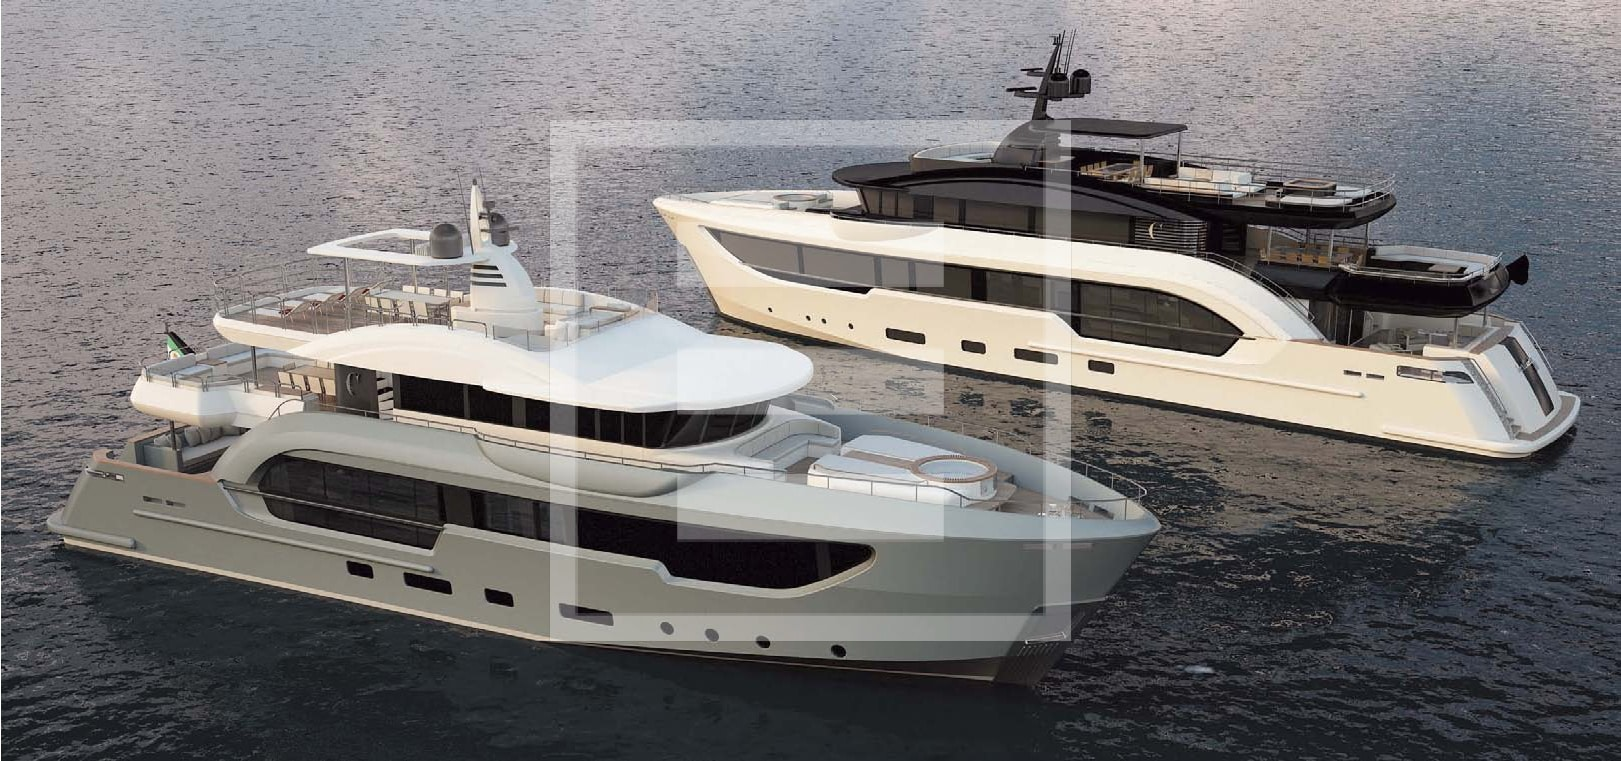 Da Columbus Yachts e Too Design ecco la gamma Berlinetta